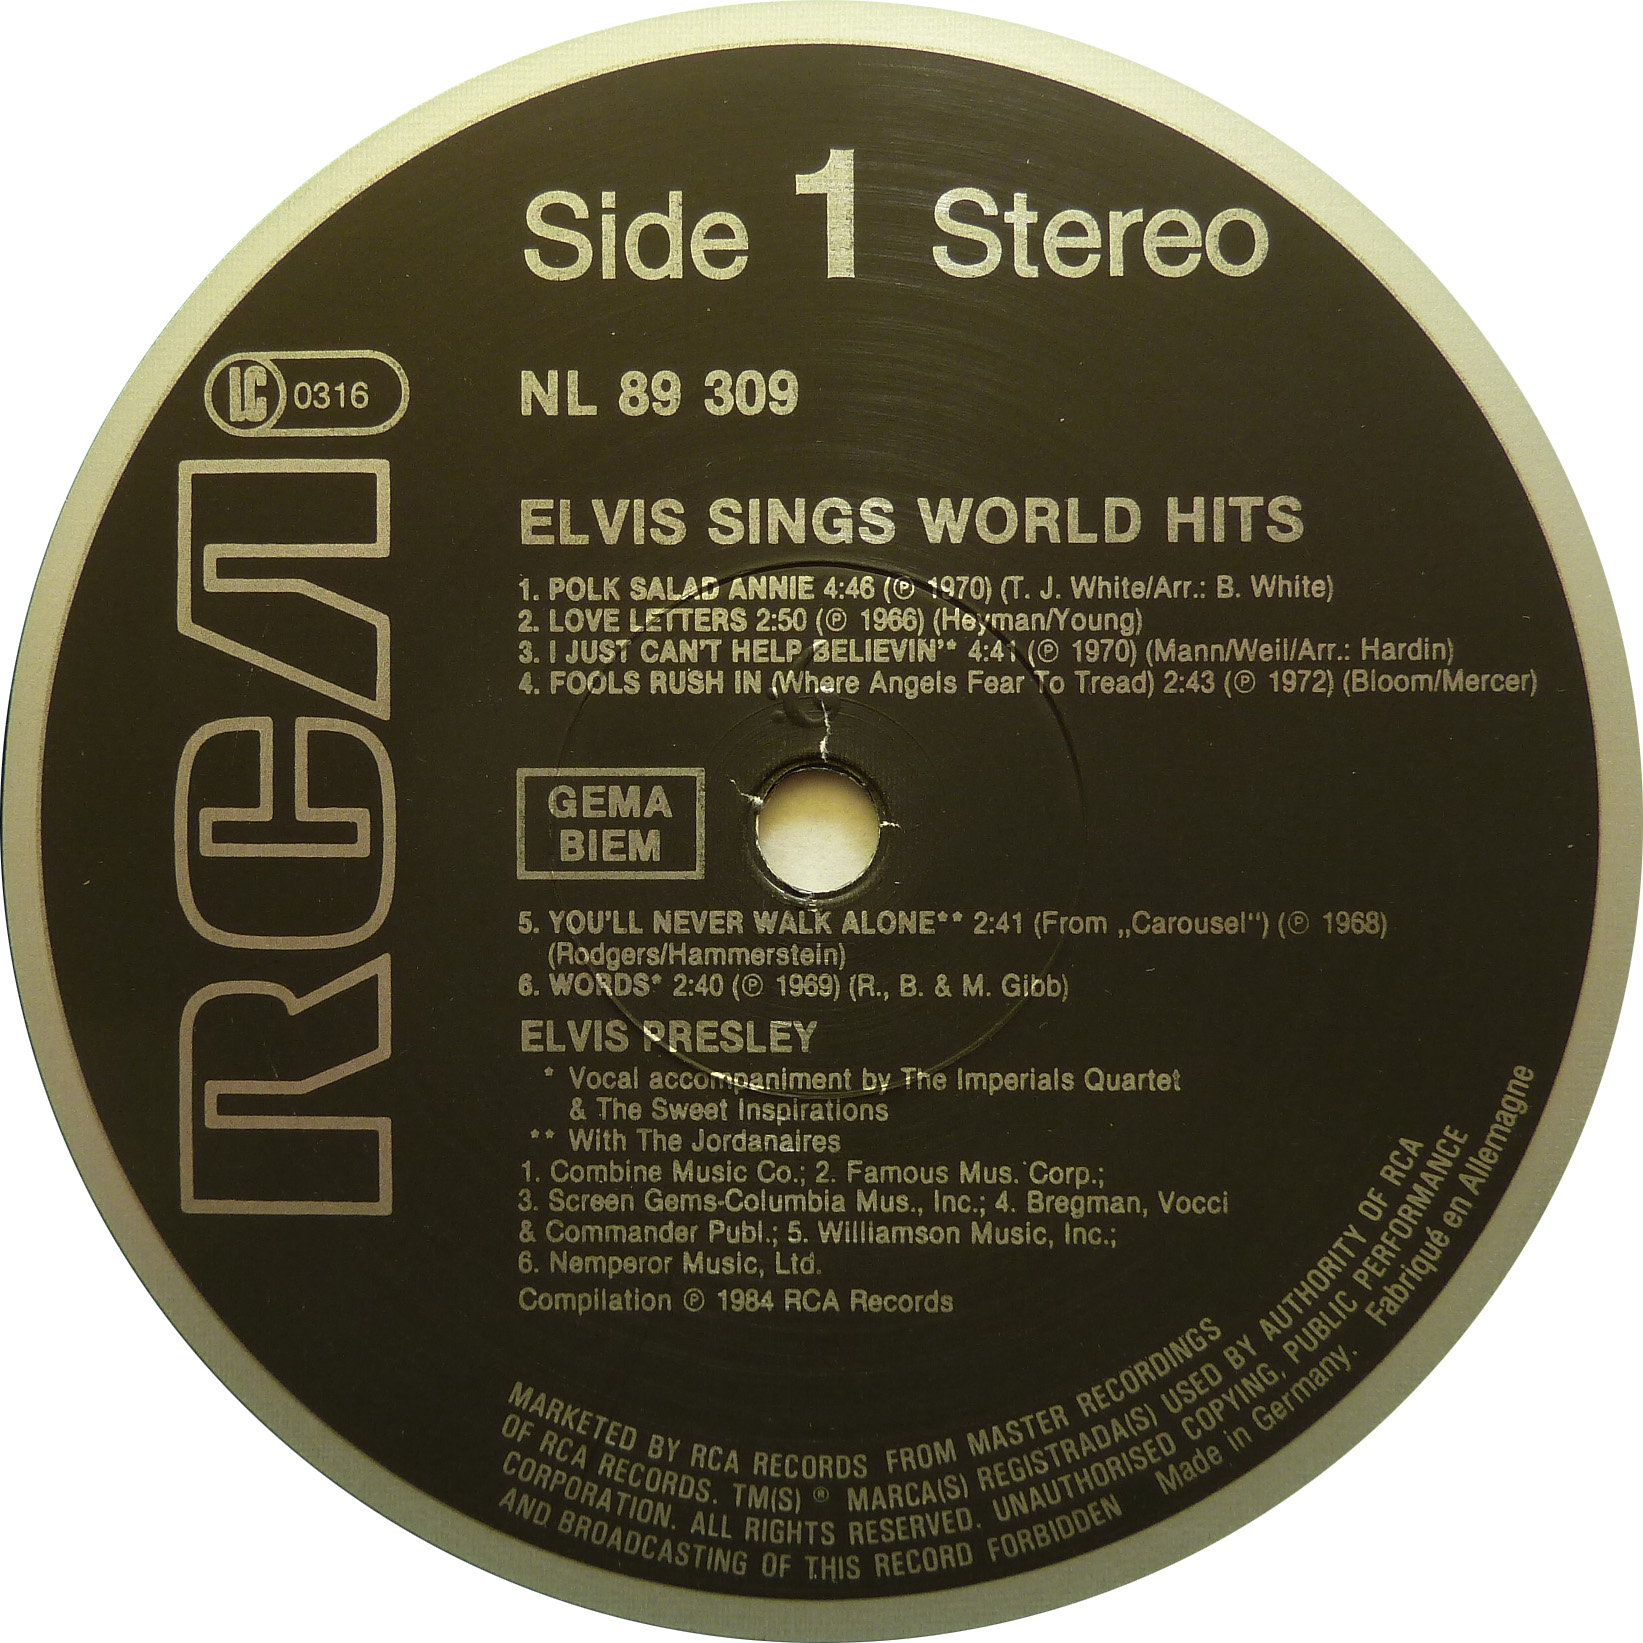 ELVIS SINGS WORLD HITS Worldhits08_84side1sbu09